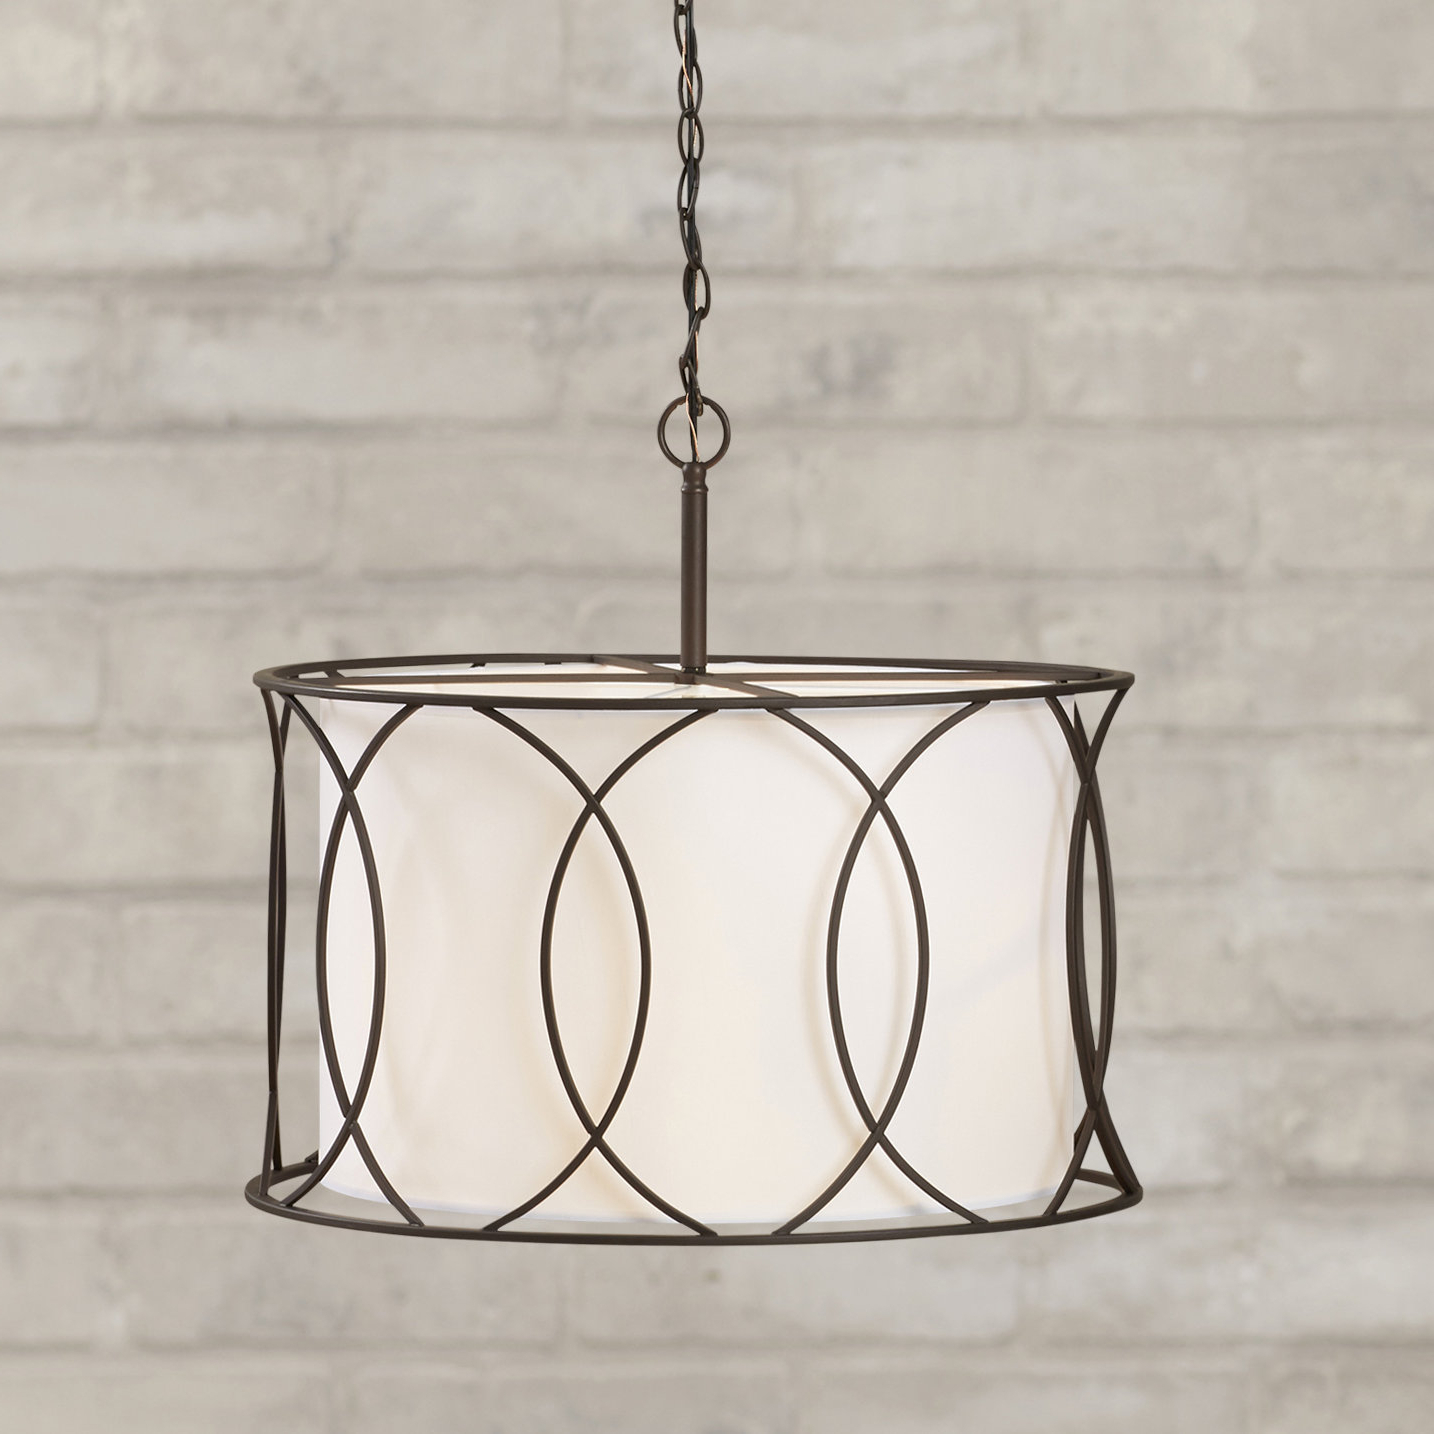 Farmhouse & Rustic Drum Chandeliers (View 15 of 25)